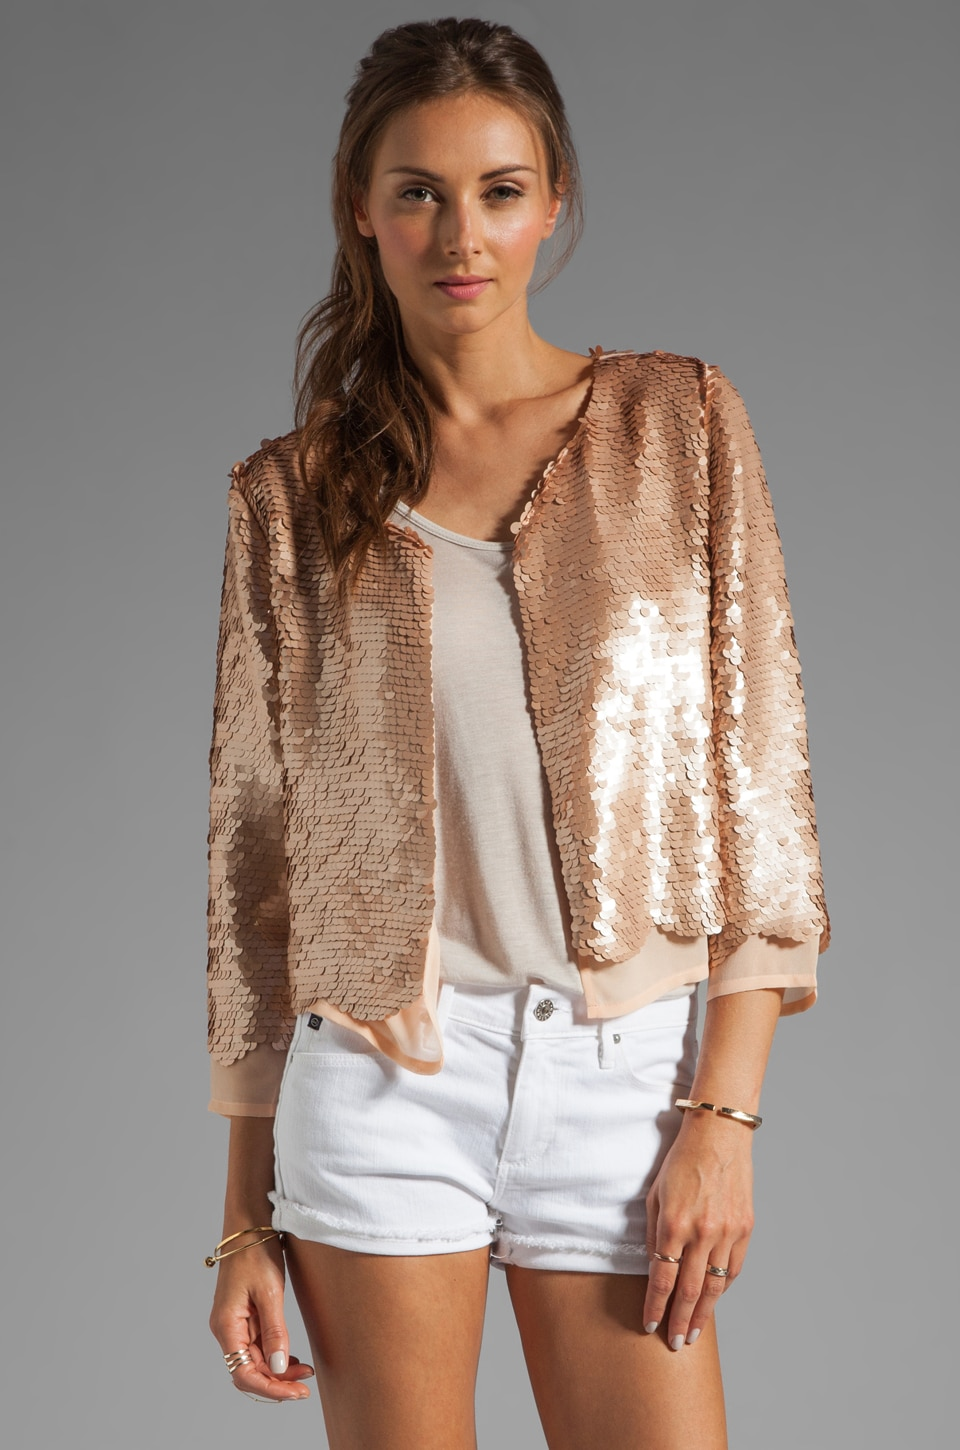 Paper Crown by Lauren Conrad Chester Sequin Jacket in Champagne/Nude